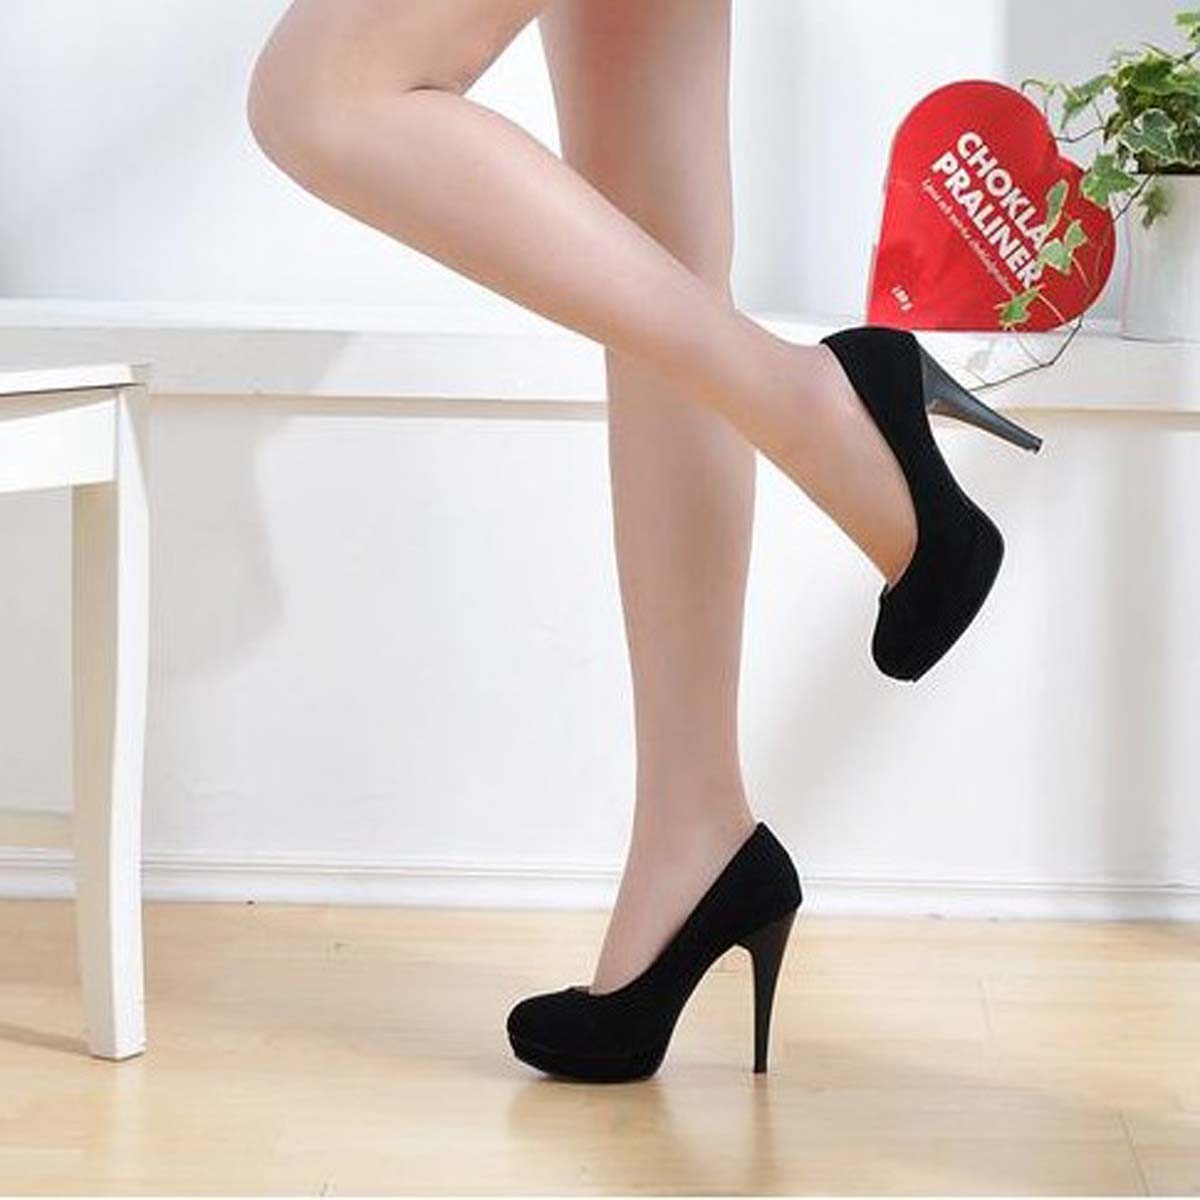 High heeled shoes princess shoes platform women's nubuck leather shoes black  pumps woman FREE shipping-inPumps from Shoes on Aliexpress.com